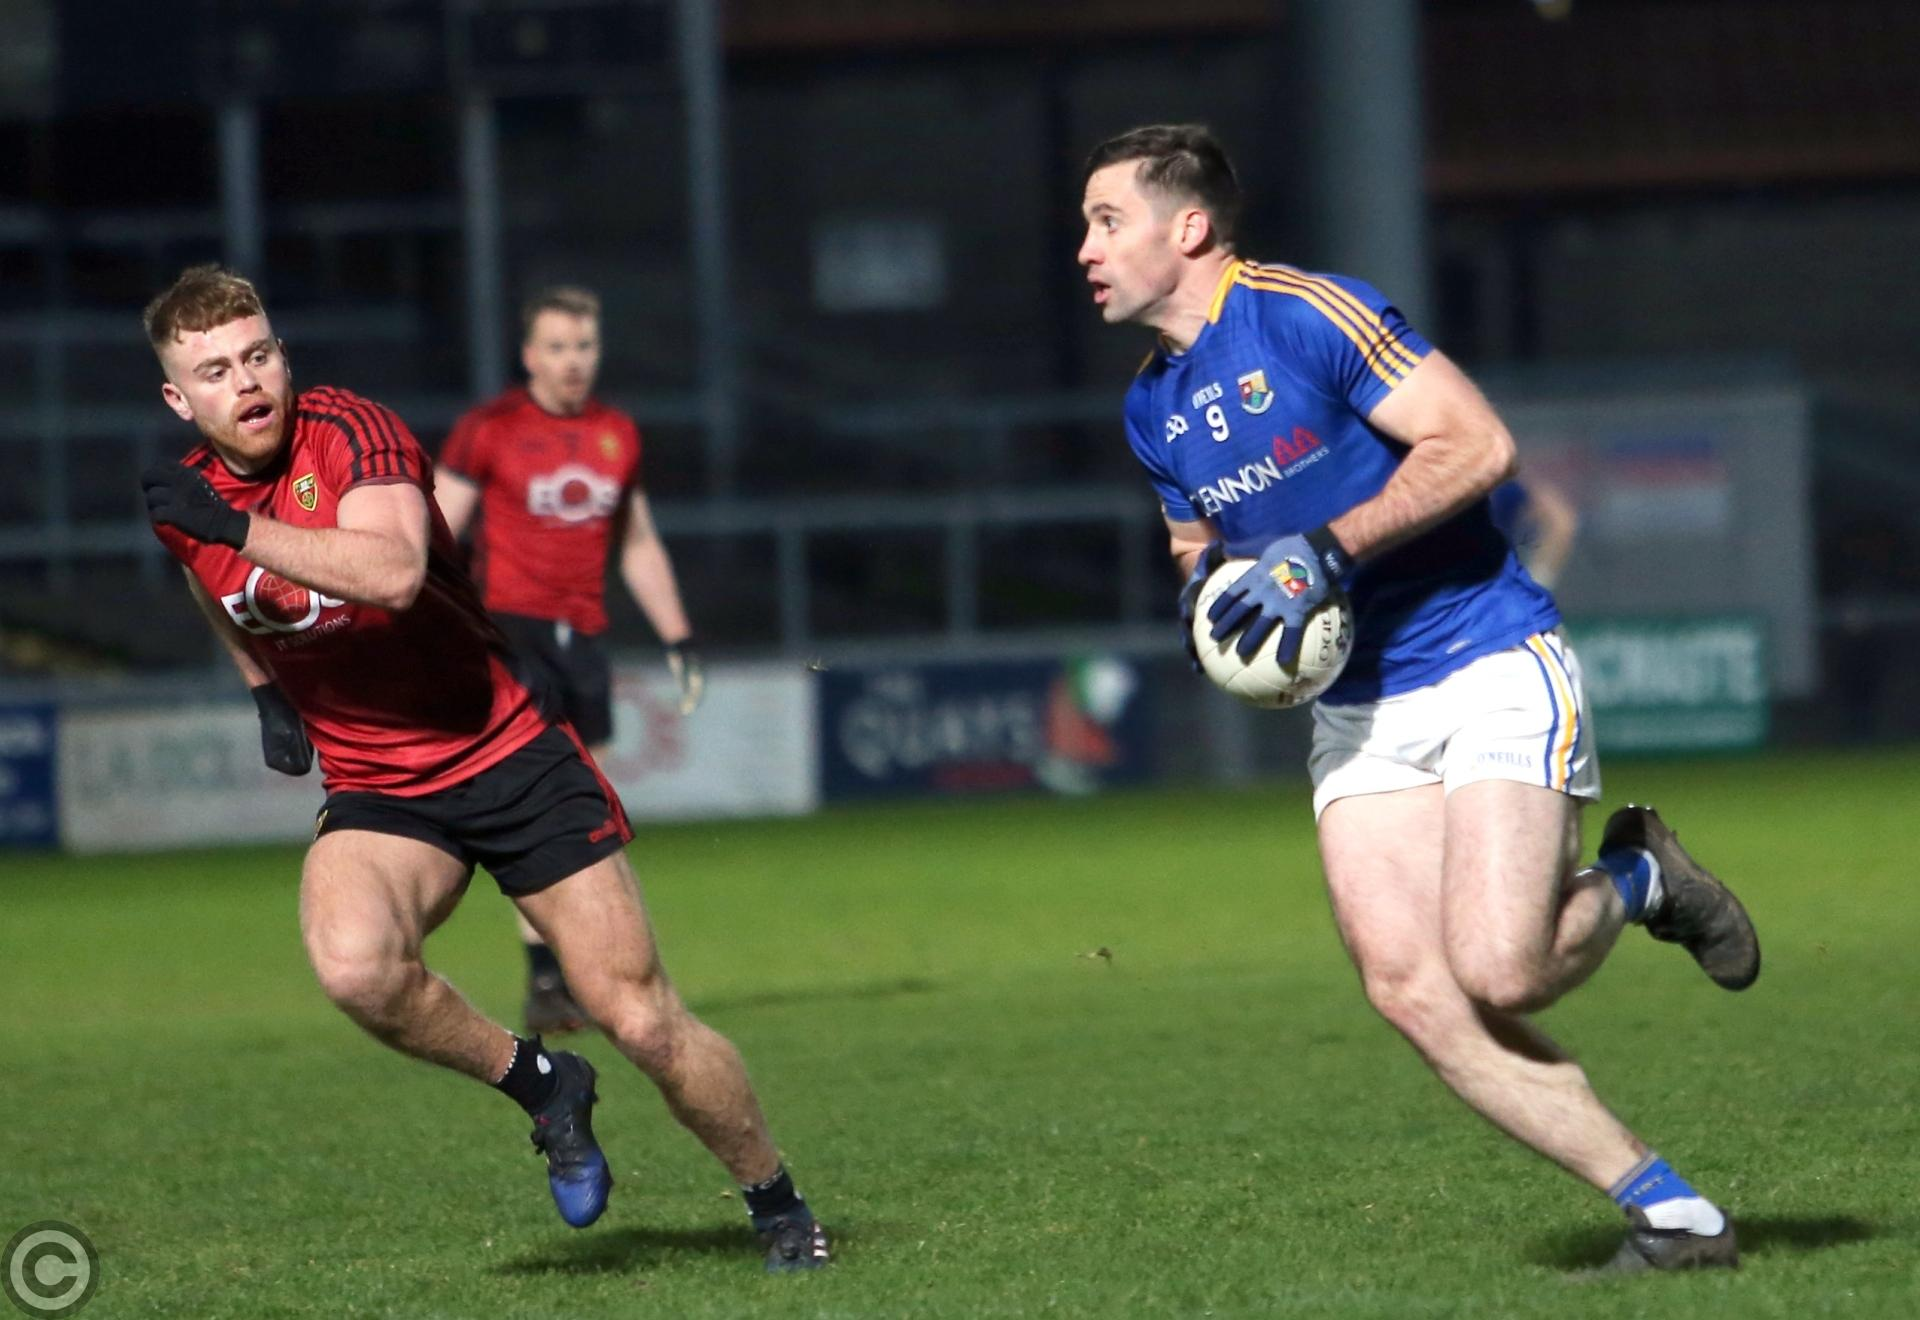 Tipperary deaths - Friday, May 22, 2020 - Tipperary Live